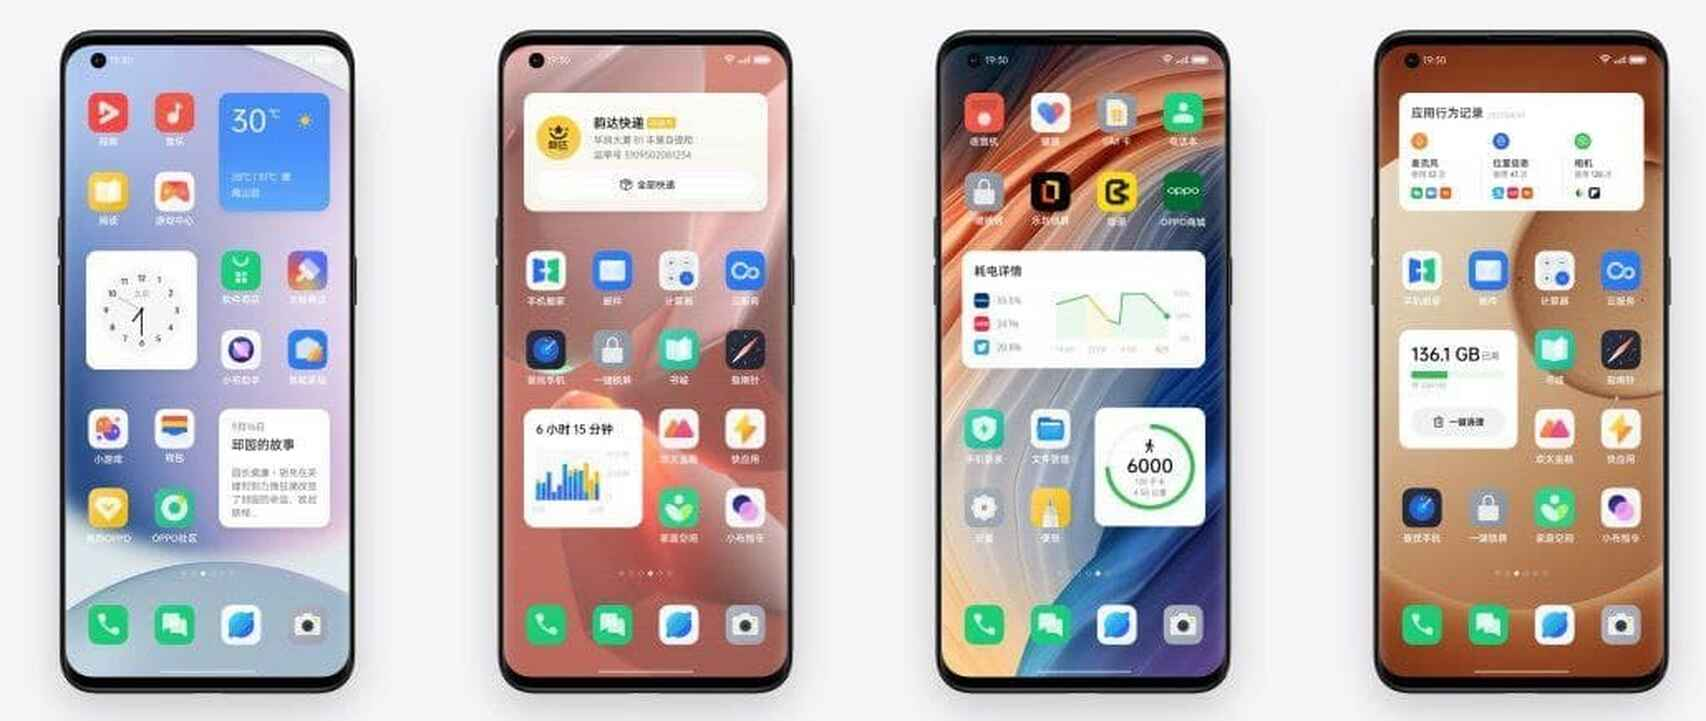 OPPO's Android 12 version is official: Color OS 12